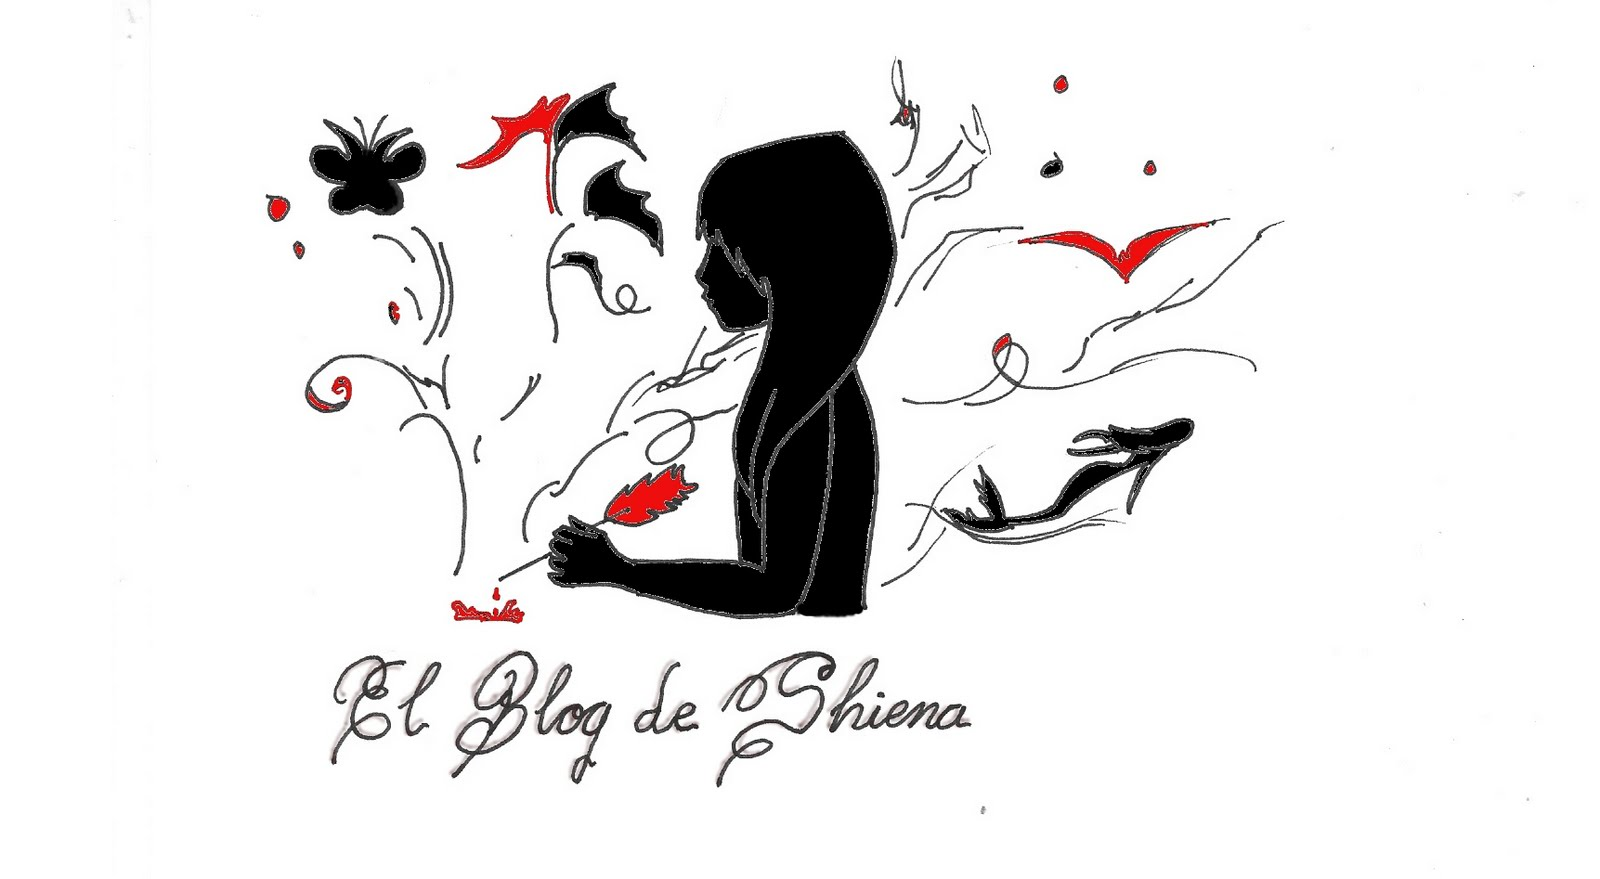 El Blog de Shiena